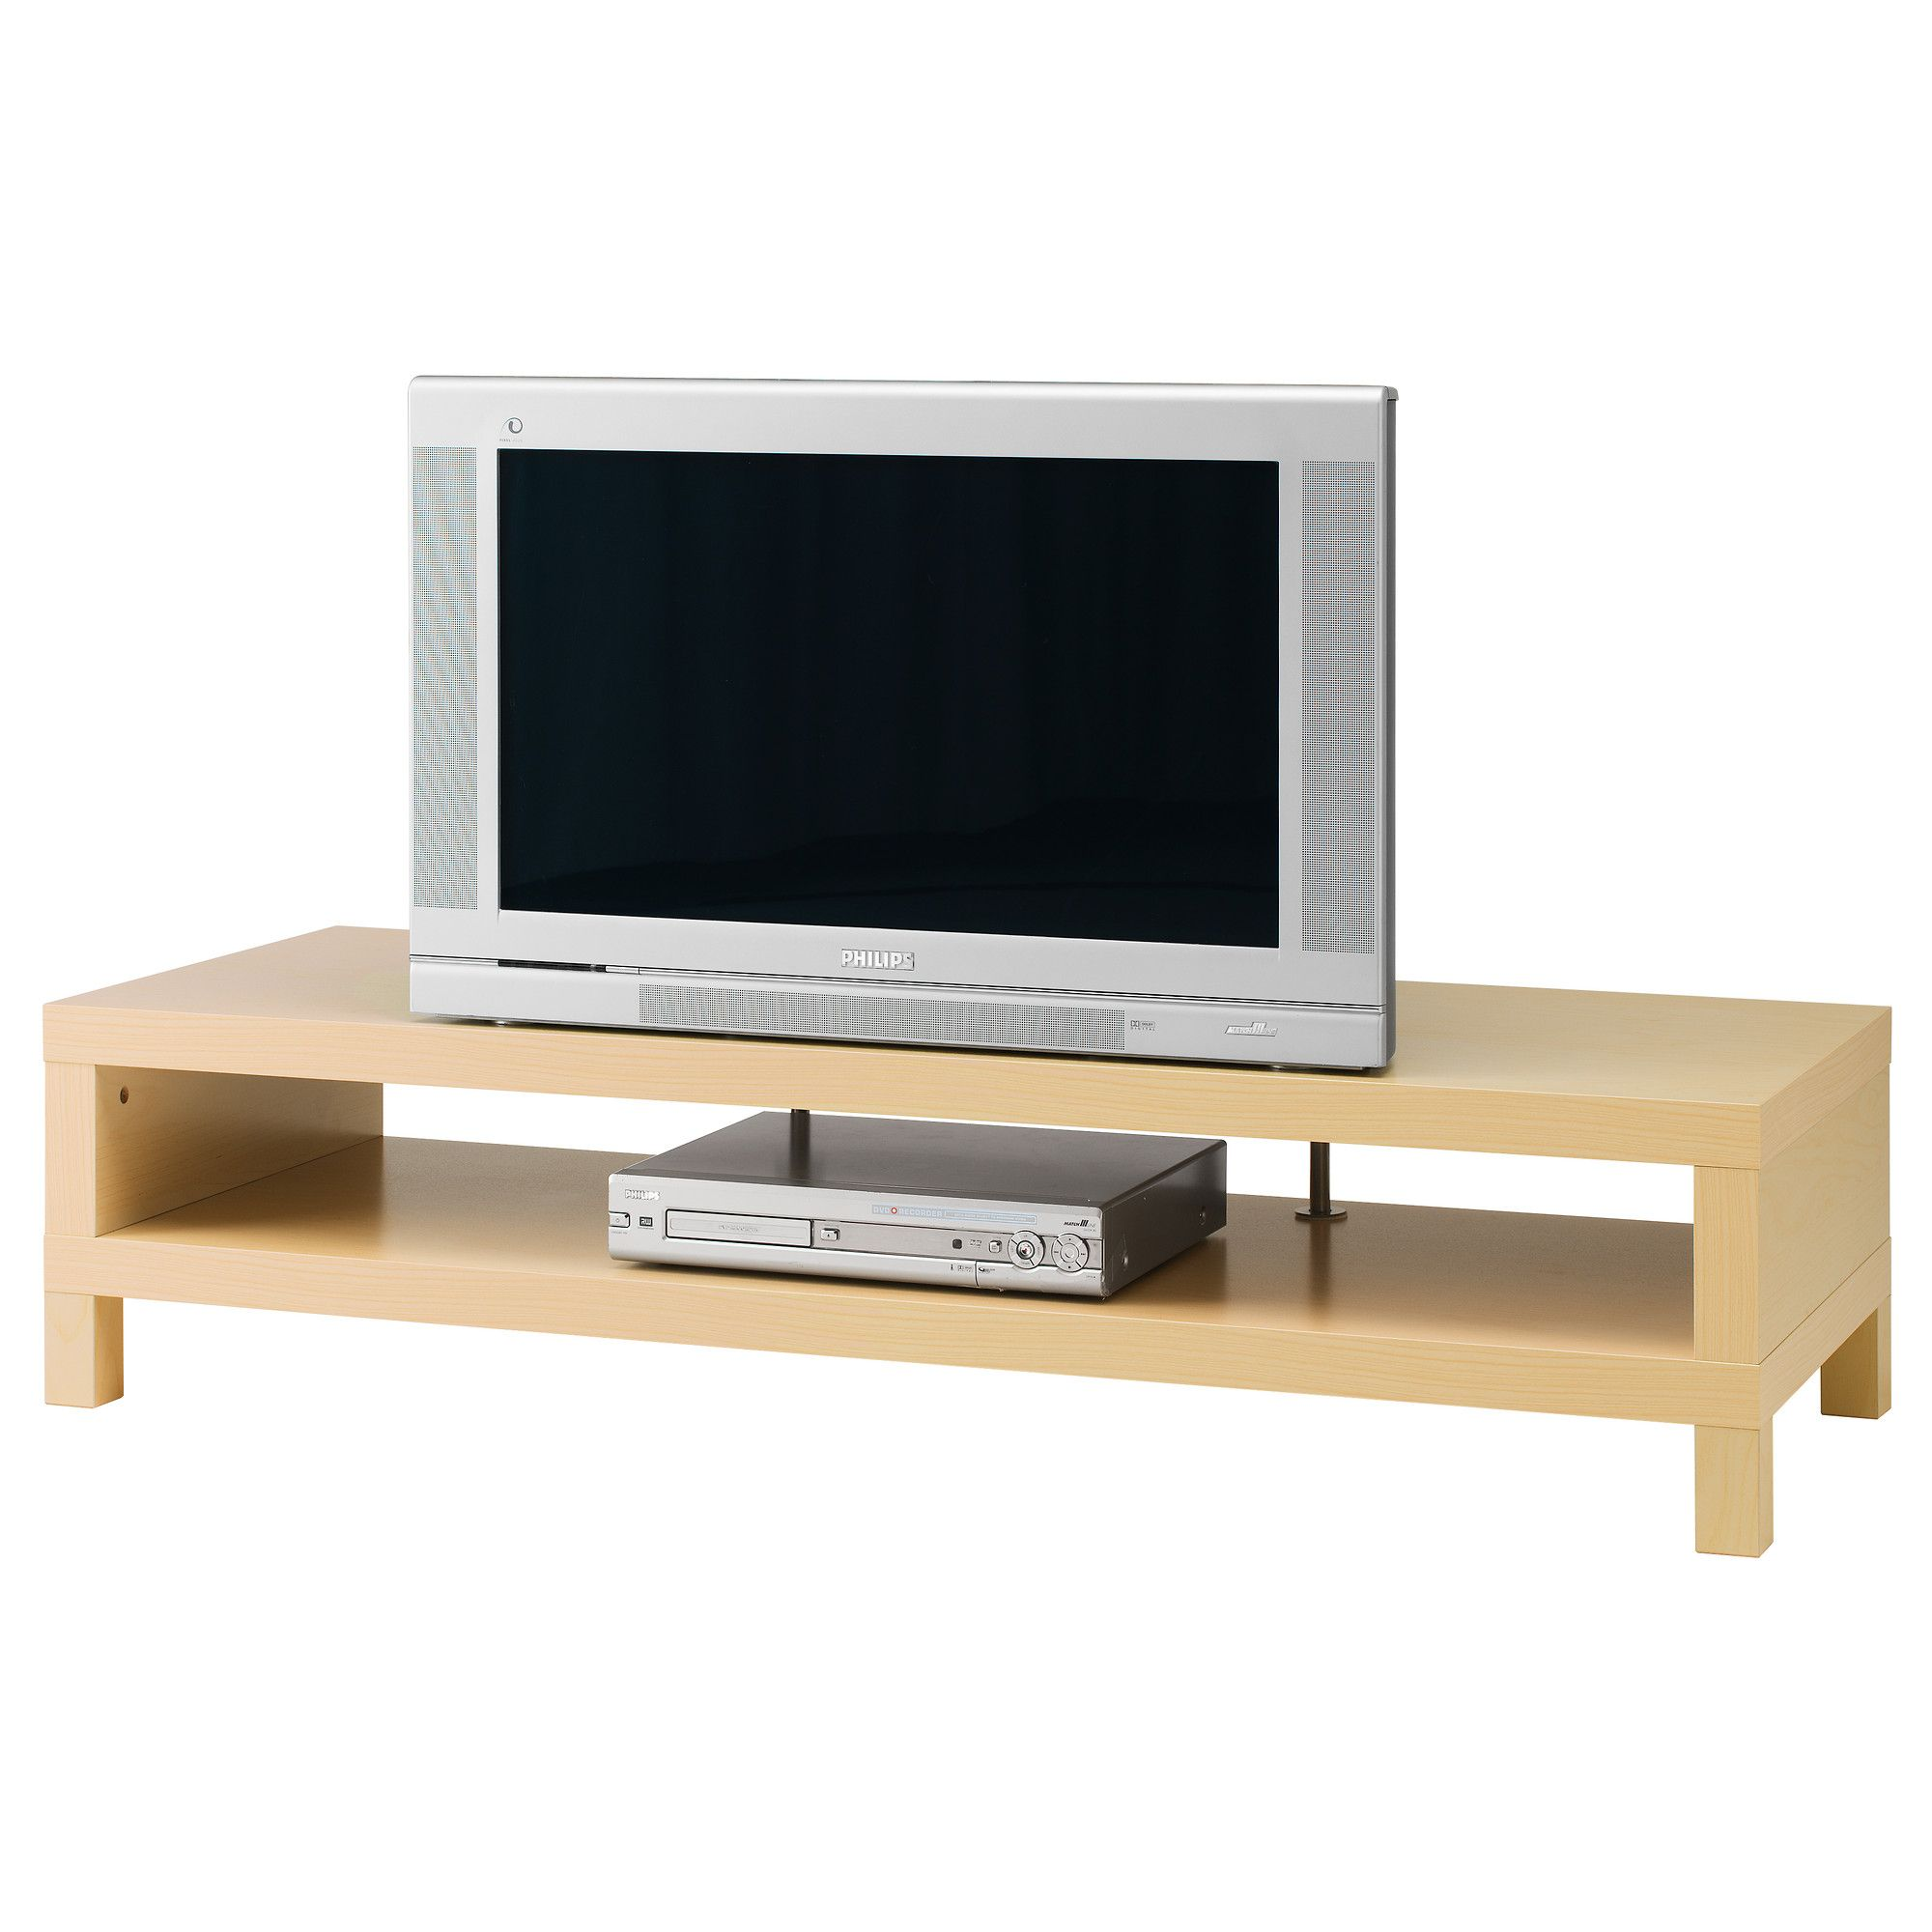 Lack Tv Unit Birch Effect Ikea 50 Diy Crafts Pinterest